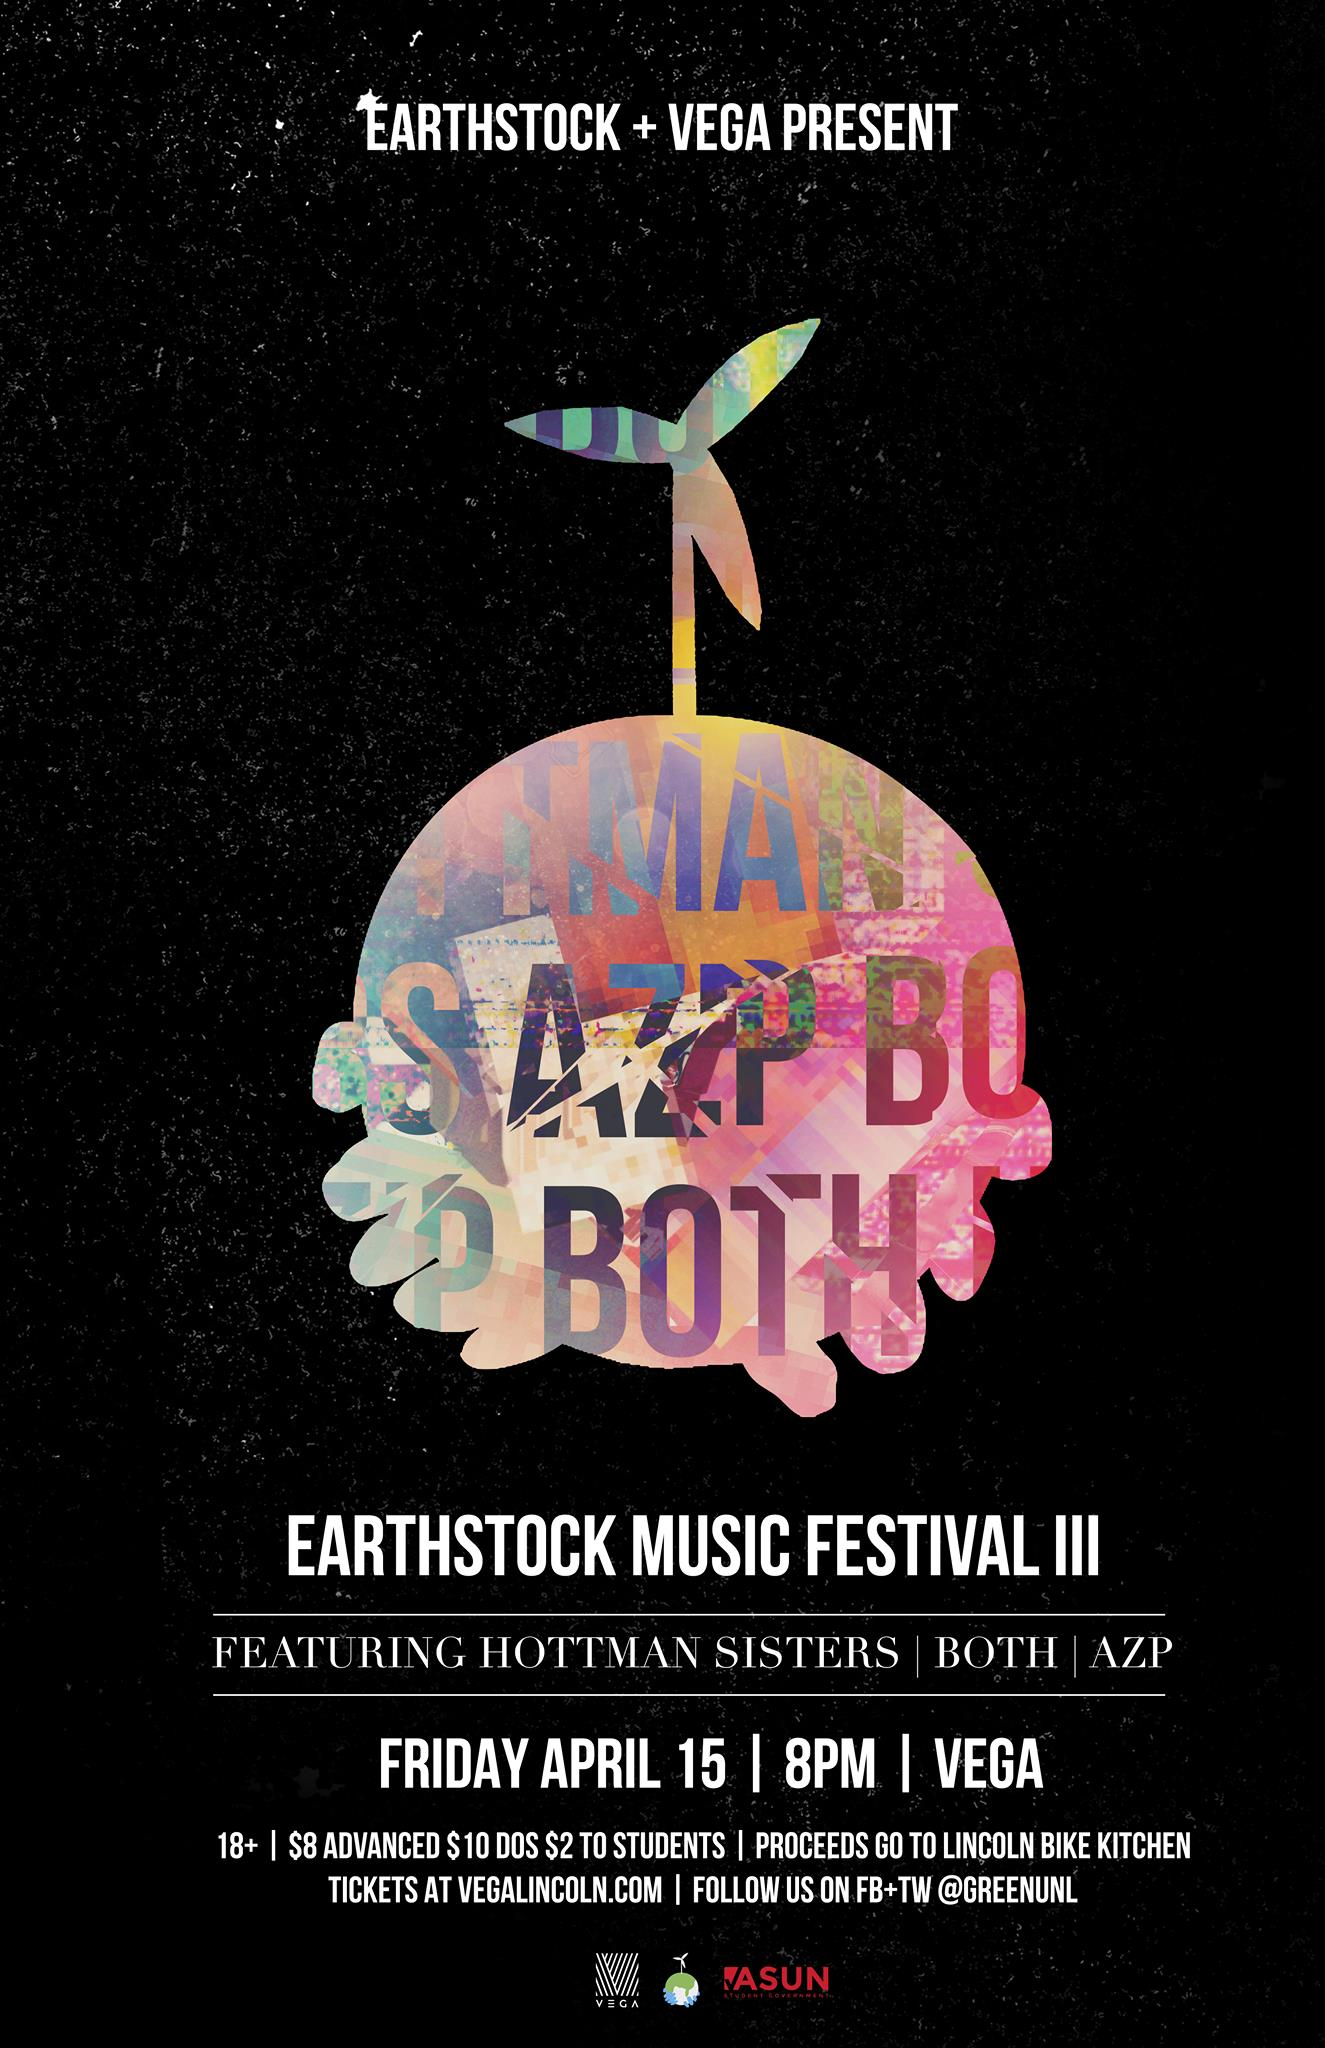 Earthstock Music Festival, Fri., April 15, Vega @ 8pm